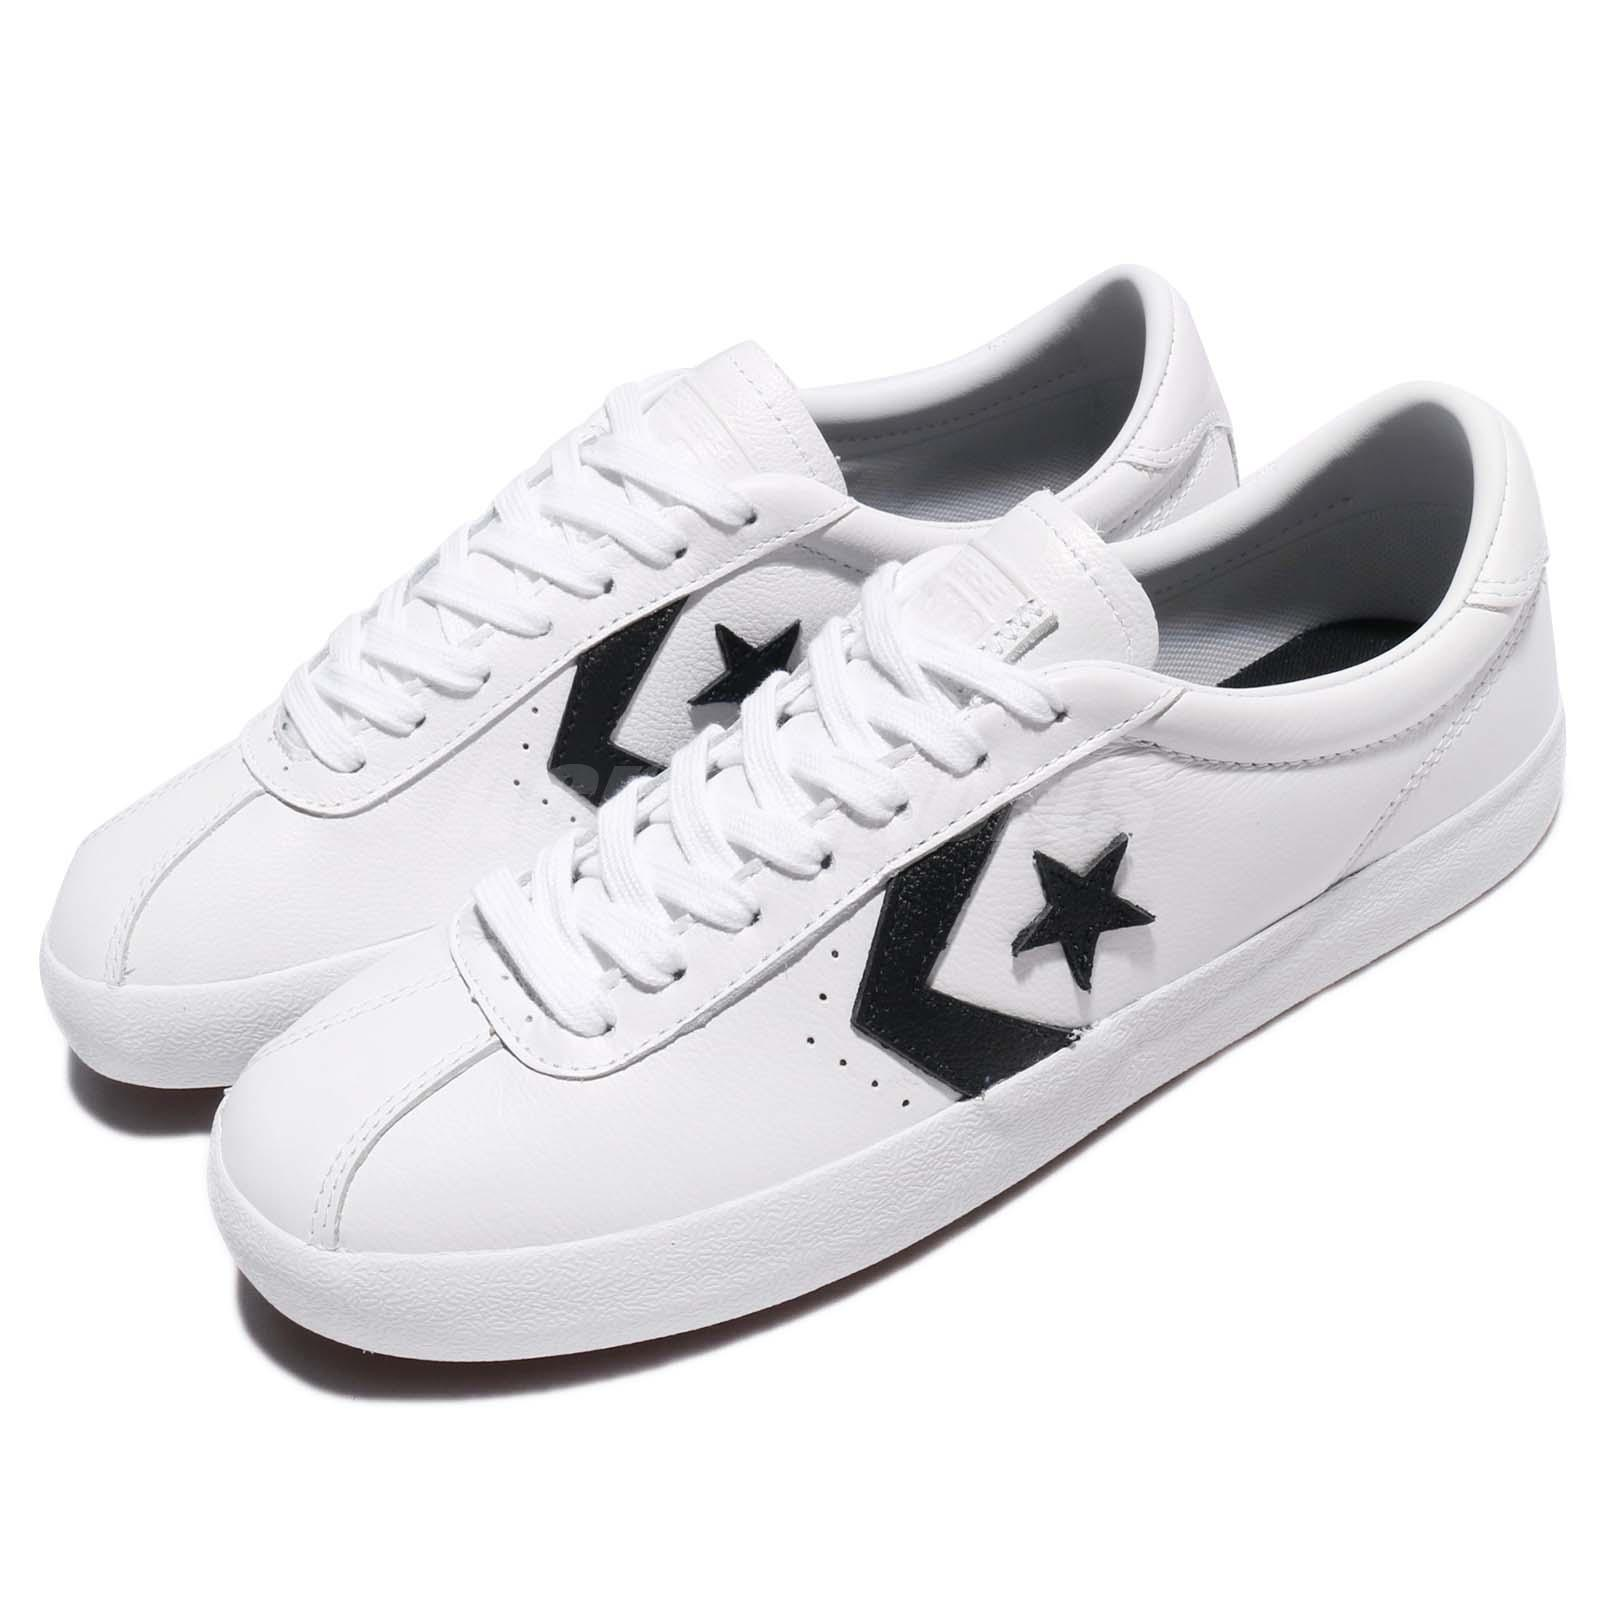 1e2ce2f5b0303b Details about Converse Breakpoint Low Top White Black Leather Men Sneakers  Shoes 157777C